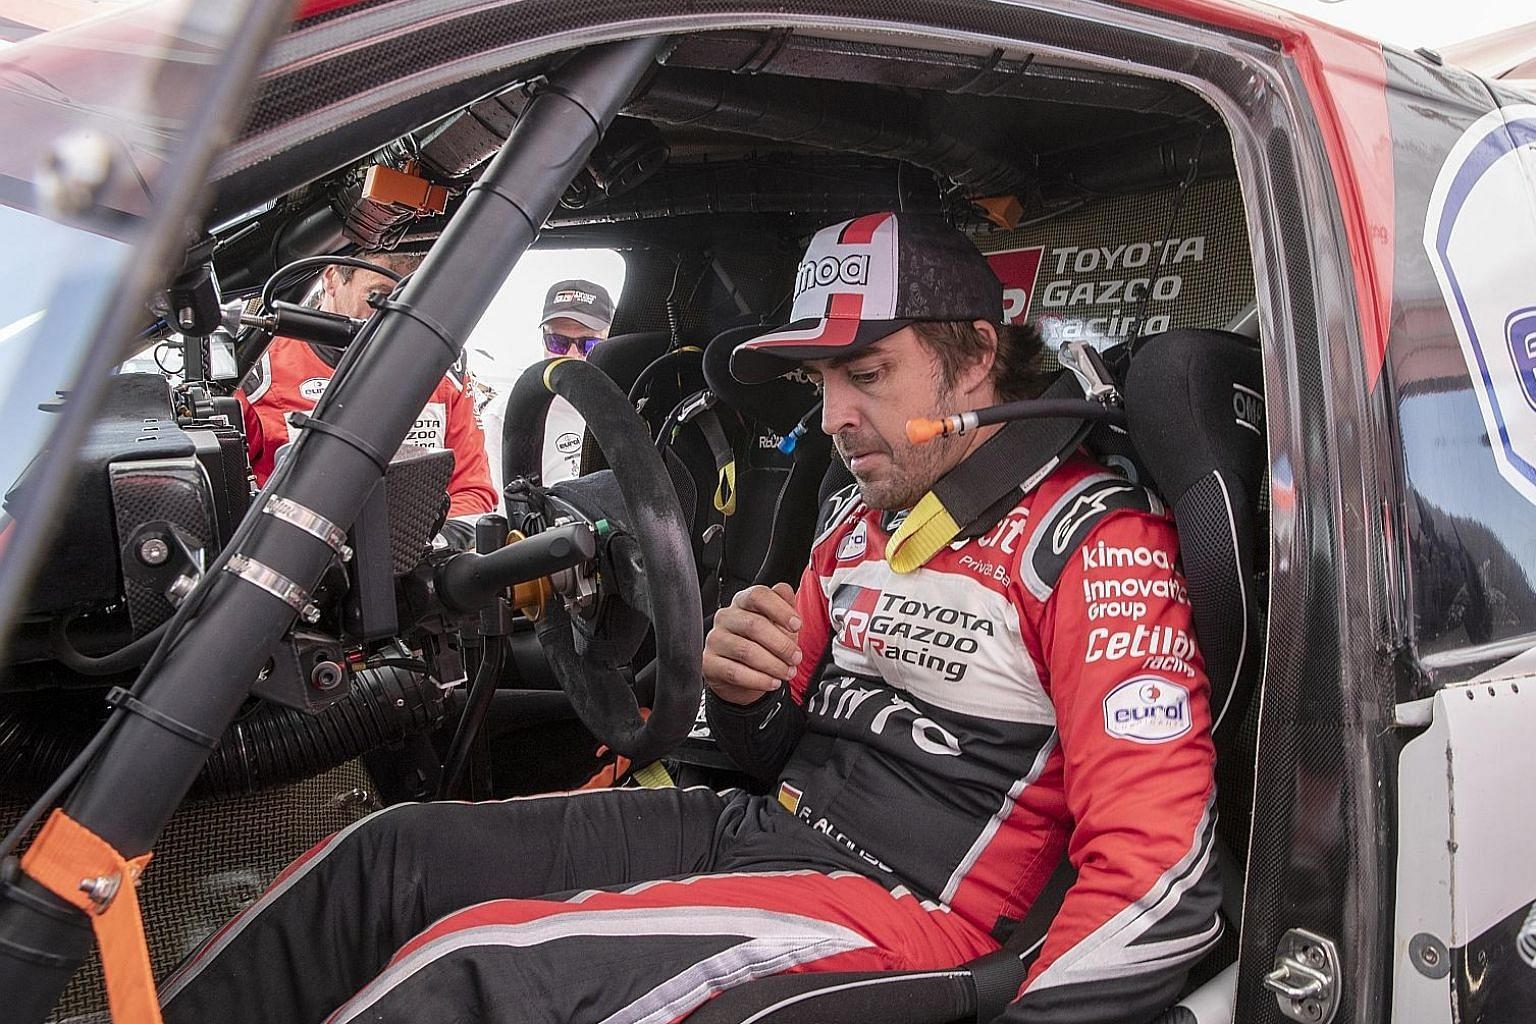 Fernando Alonso after Stage 8 of the Dakar Rally in January. He finished 13th overall in his debut. PHOTO: EPA-EFE